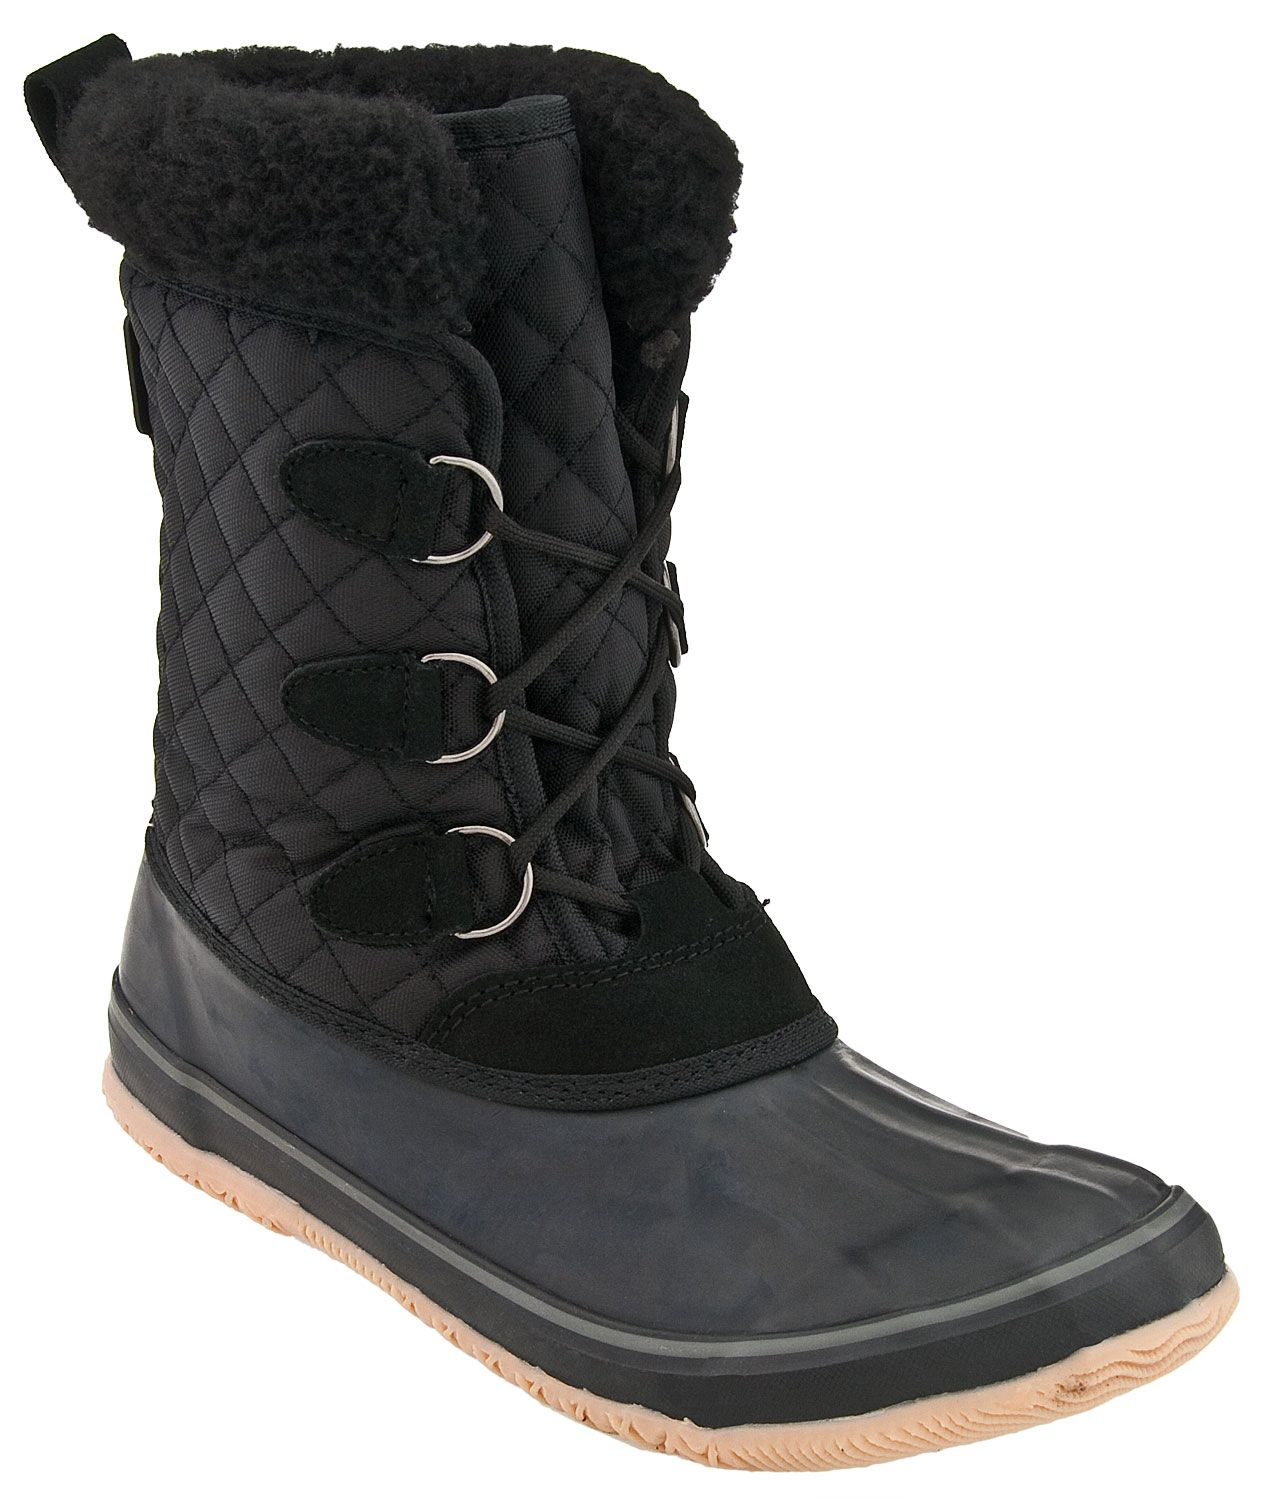 Good Boots! - Kamik Snowfling from www.planetshoes.com